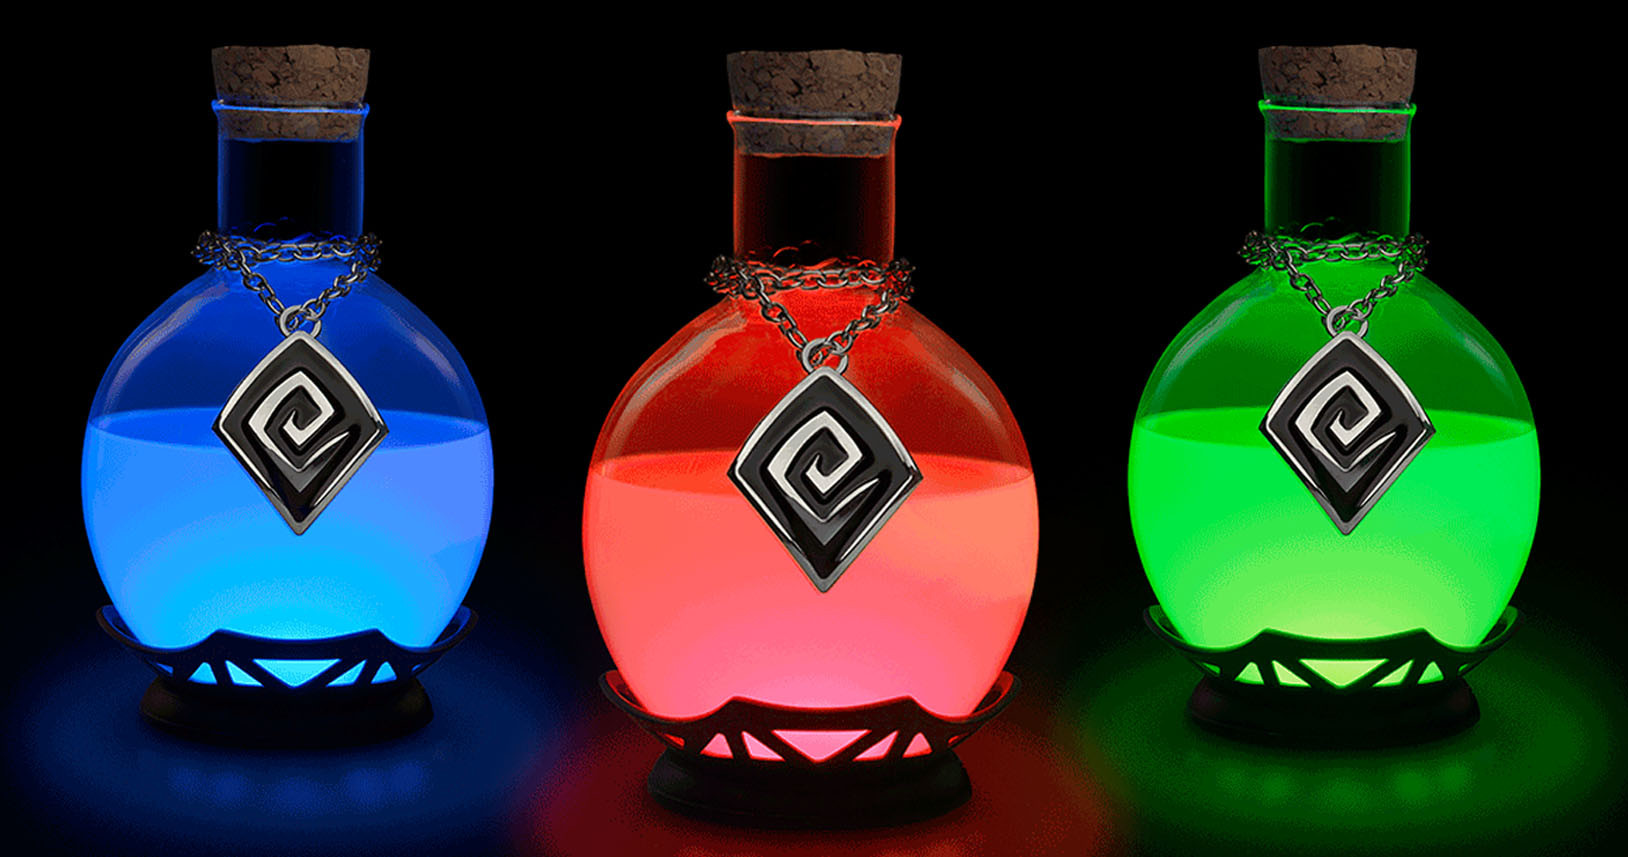 Best ideas about Led Potion Desk Lamp . Save or Pin LED Potion Desk Lamp Shut Up And Take My Yen Now.